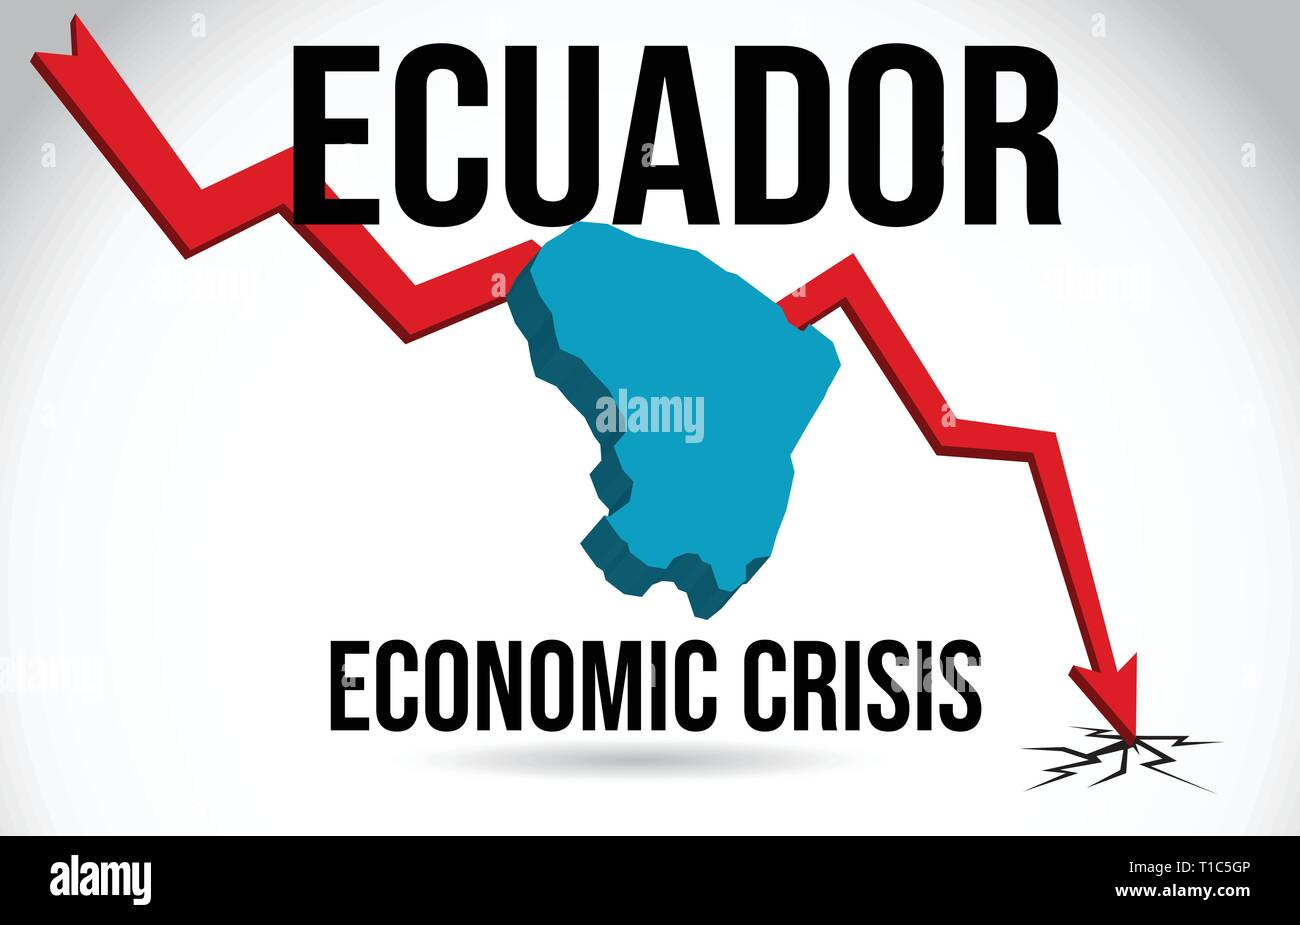 Ecuador Map Financial Crisis Economic Collapse Market Crash Global Meltdown Vector Illustration. - Stock Vector